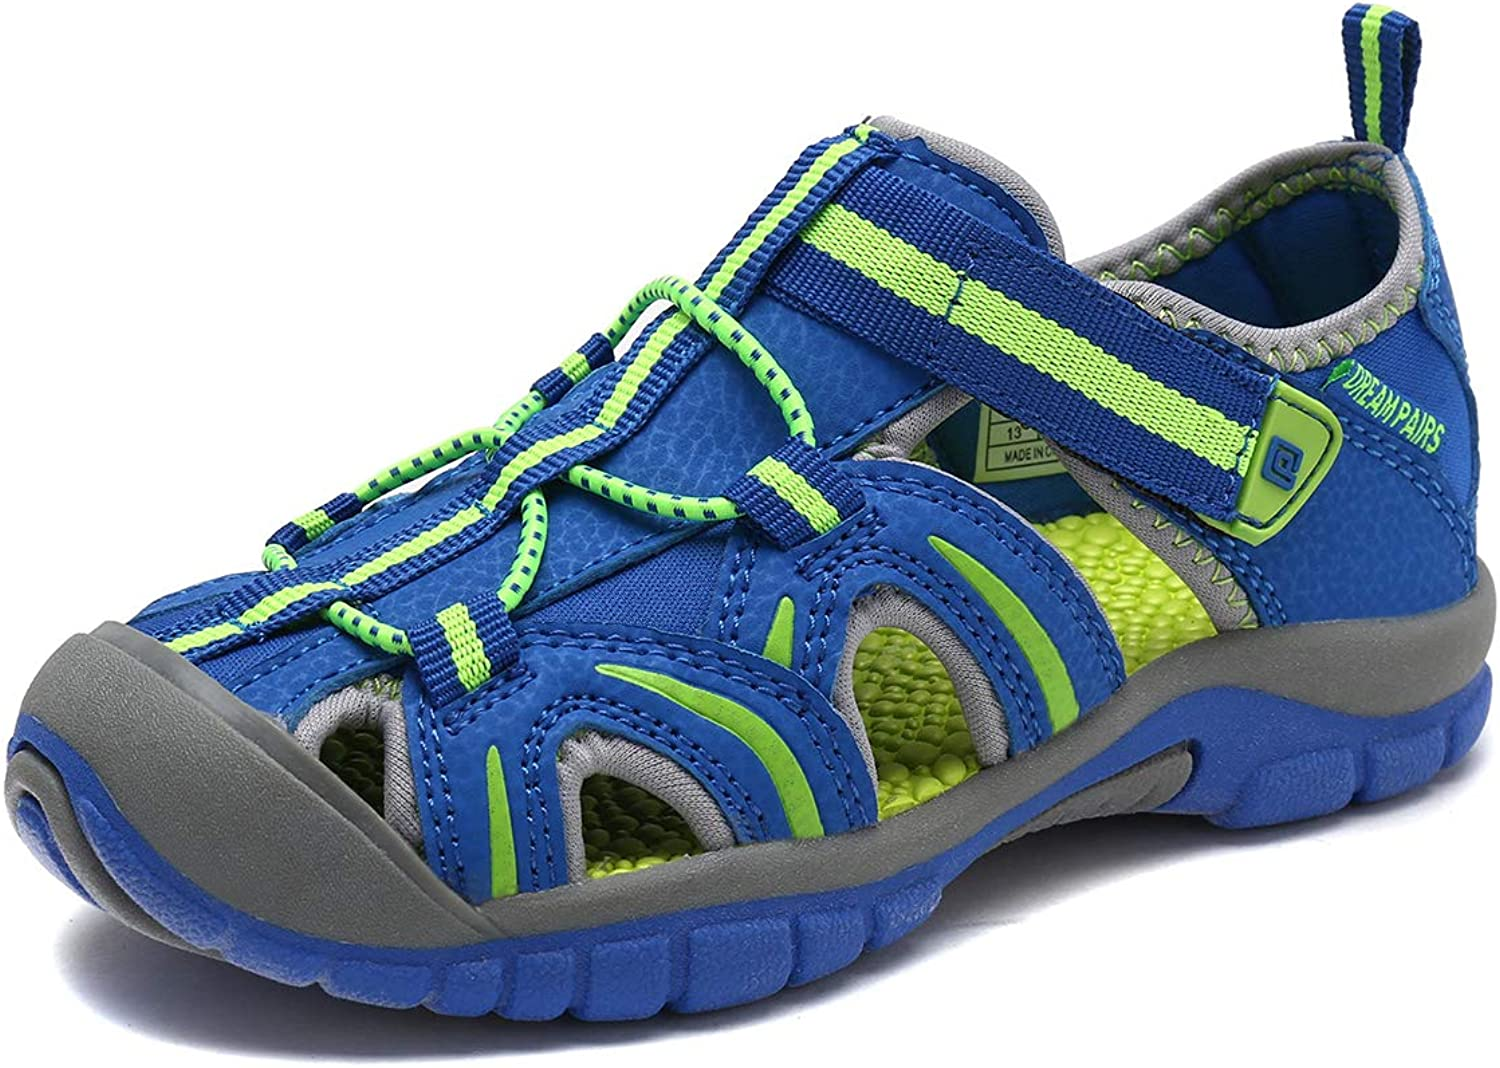 DREAM PAIRS Boys Girls 171112-K Navy NEON Green Outdoor Summer Sandals Size 4 M US Big Kid